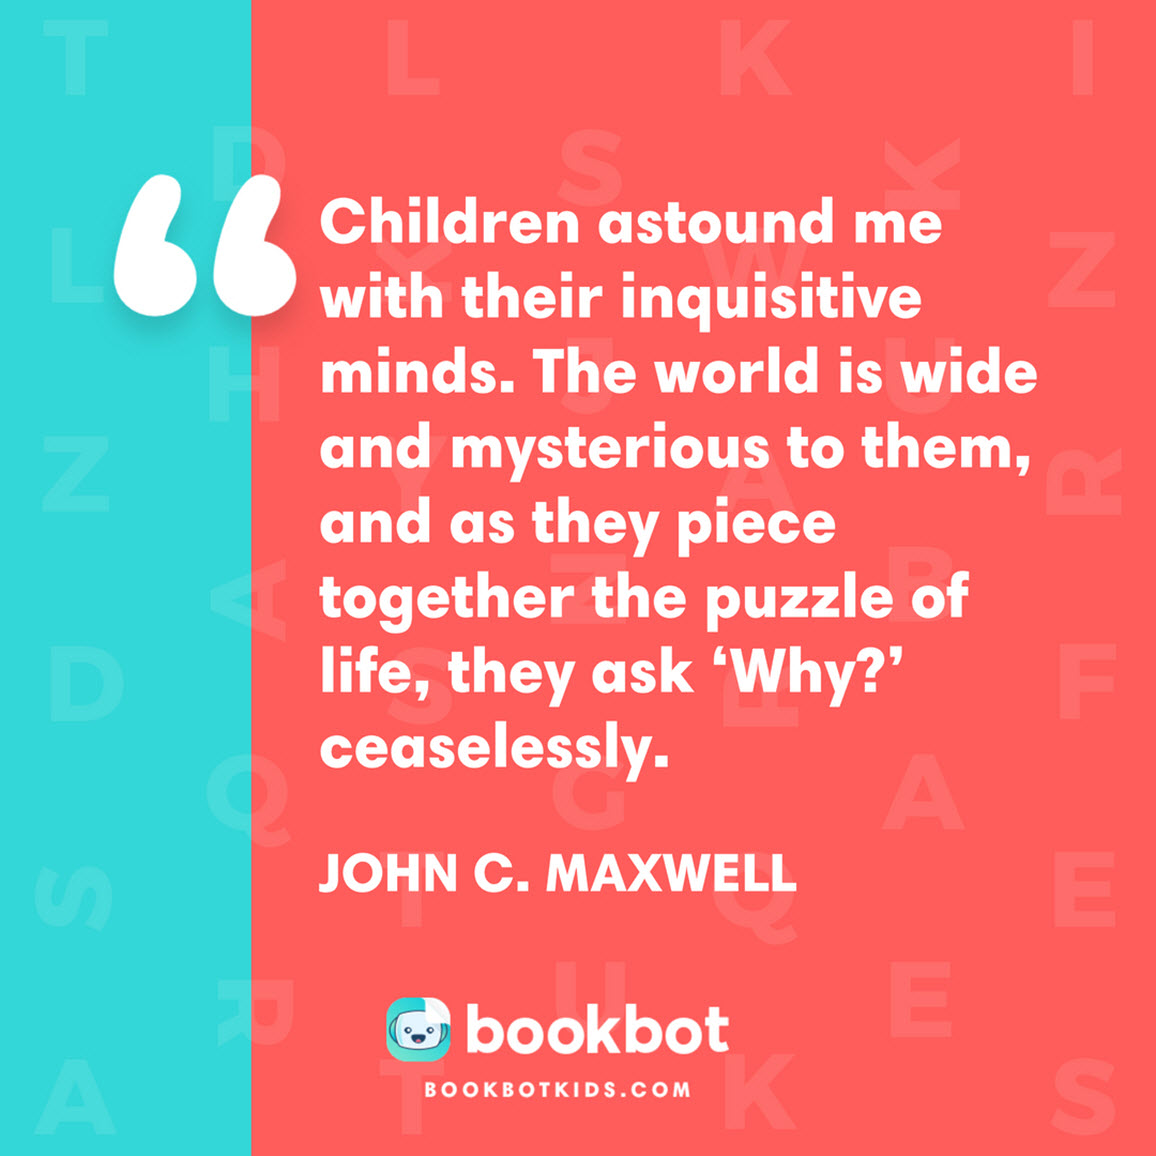 Children astound me with their inquisitive minds. The world is wide and mysterious to them, and as they piece together the puzzle of life, they ask 'Why?' ceaselessly. –  John C. Maxwell